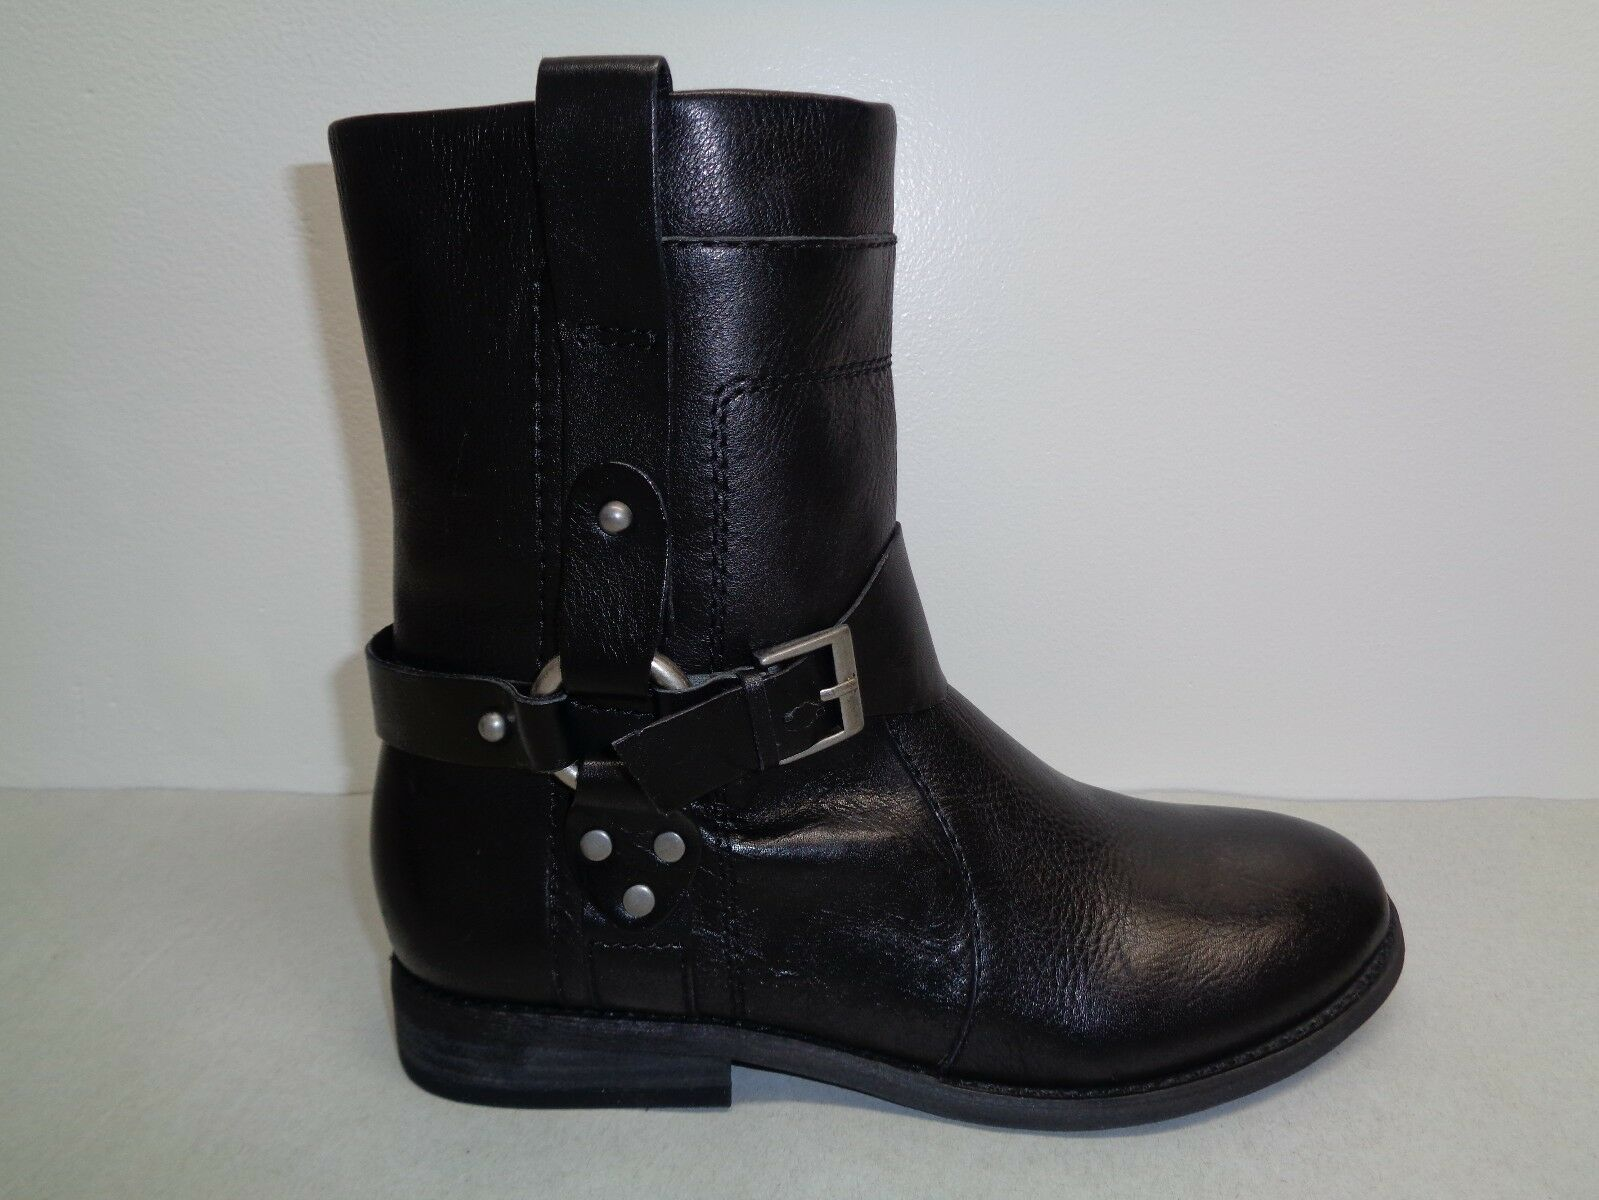 Marc Fisher Size 7 M ASHTREE Black Leather Ankle Boots New Womens Shoes